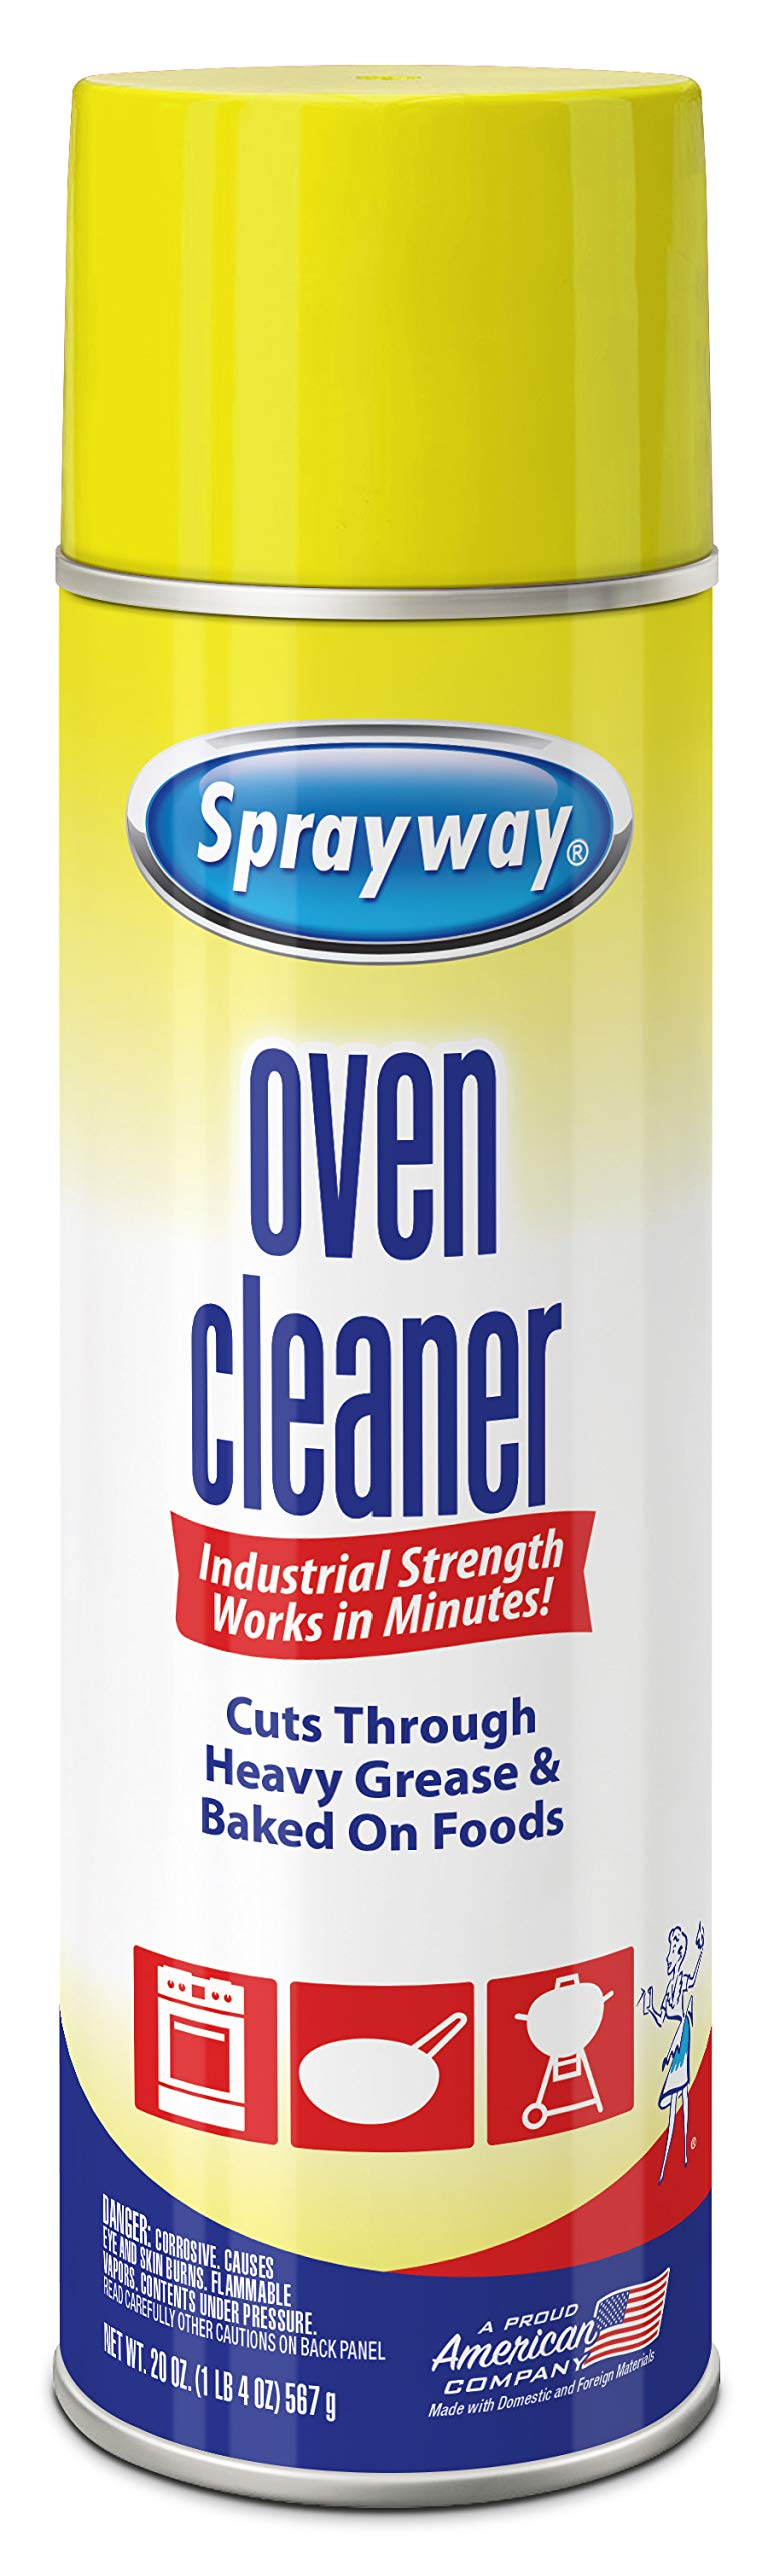 Sprayway Heavy-Duty Oven & Grill Cleaner, Removes Oil & Grease, 20 Oz, 20 Ounce by Sprayway